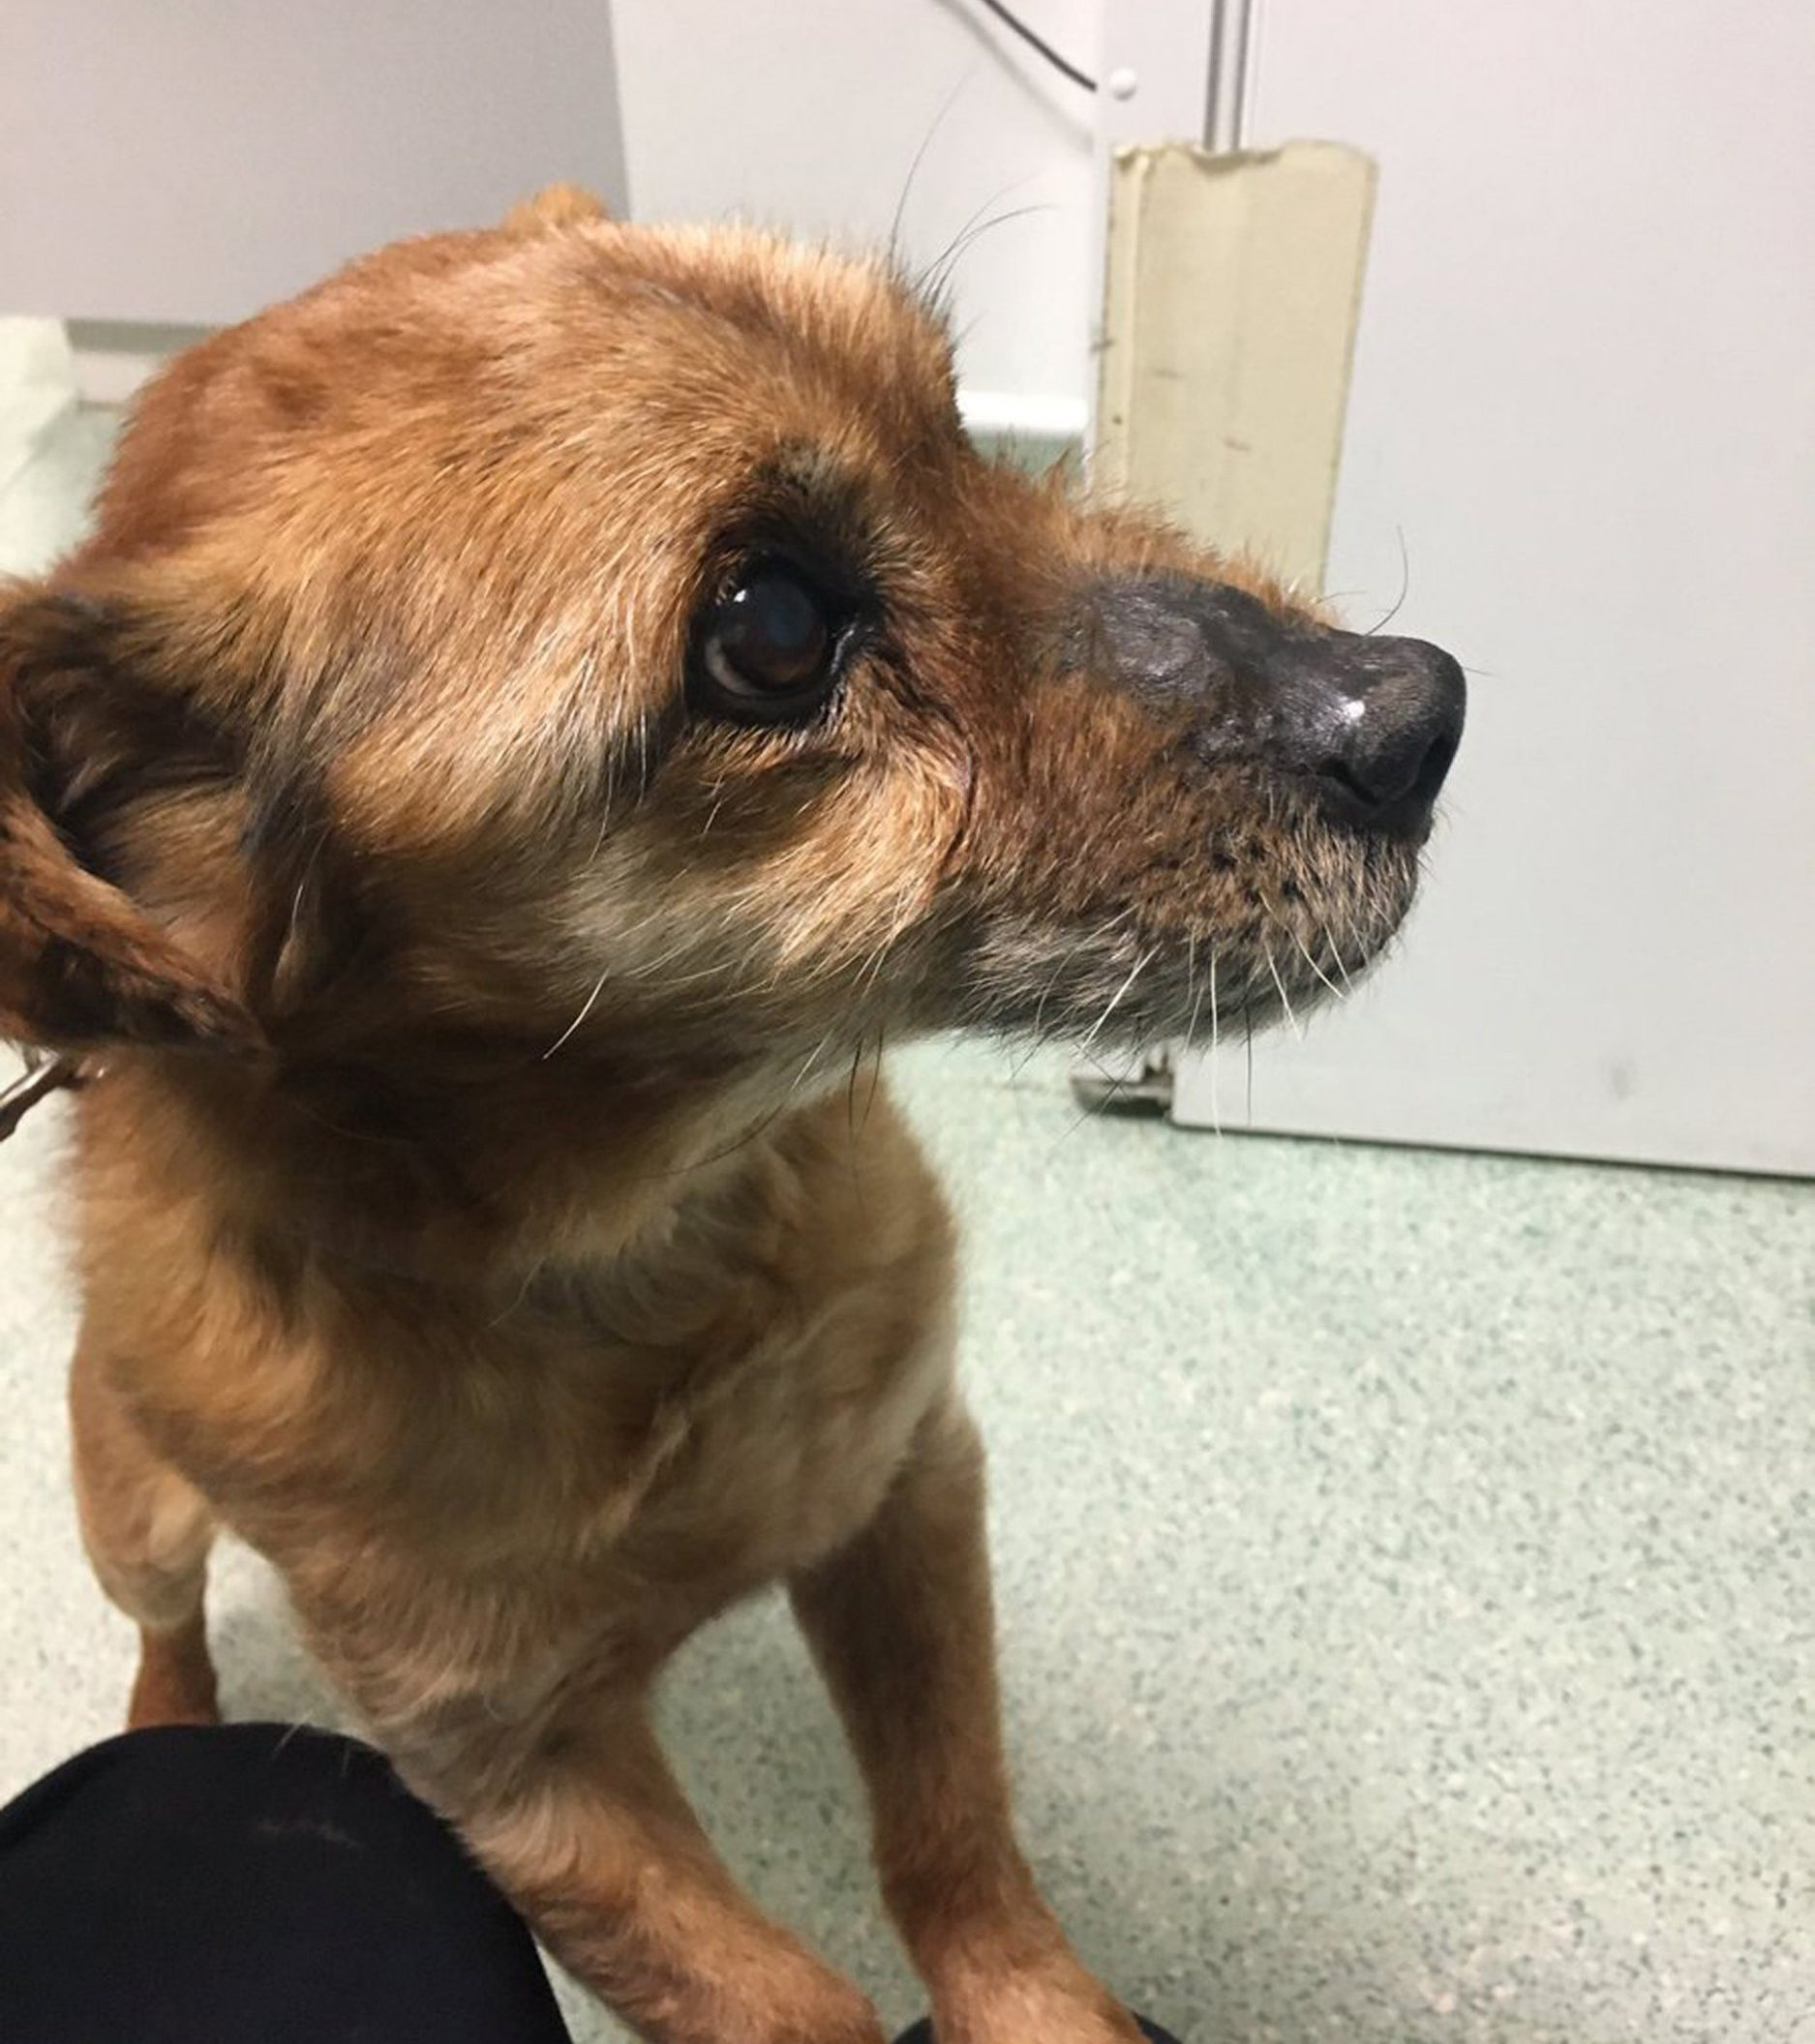 INS News Agency Ltd. 18/03/2018 *************** Picture by INS Picture Desk *************** A dog aged 92 in dog years was left abandoned out in the snow, before the RSPCA rescued him and he was today/yesterday (Sun) being offered a for a new home. Animal charity RSPCA received a huge number of calls when The Beast From the East hit, but this little terrier required immediate saving due to his short coat and tiny stature. Stormy the 19-year-old terrier was found collapsed in temperatures of -3 degrees celsius during the hellish storm blown over from Siberia that struck the whole of the UK. See copy INStormy